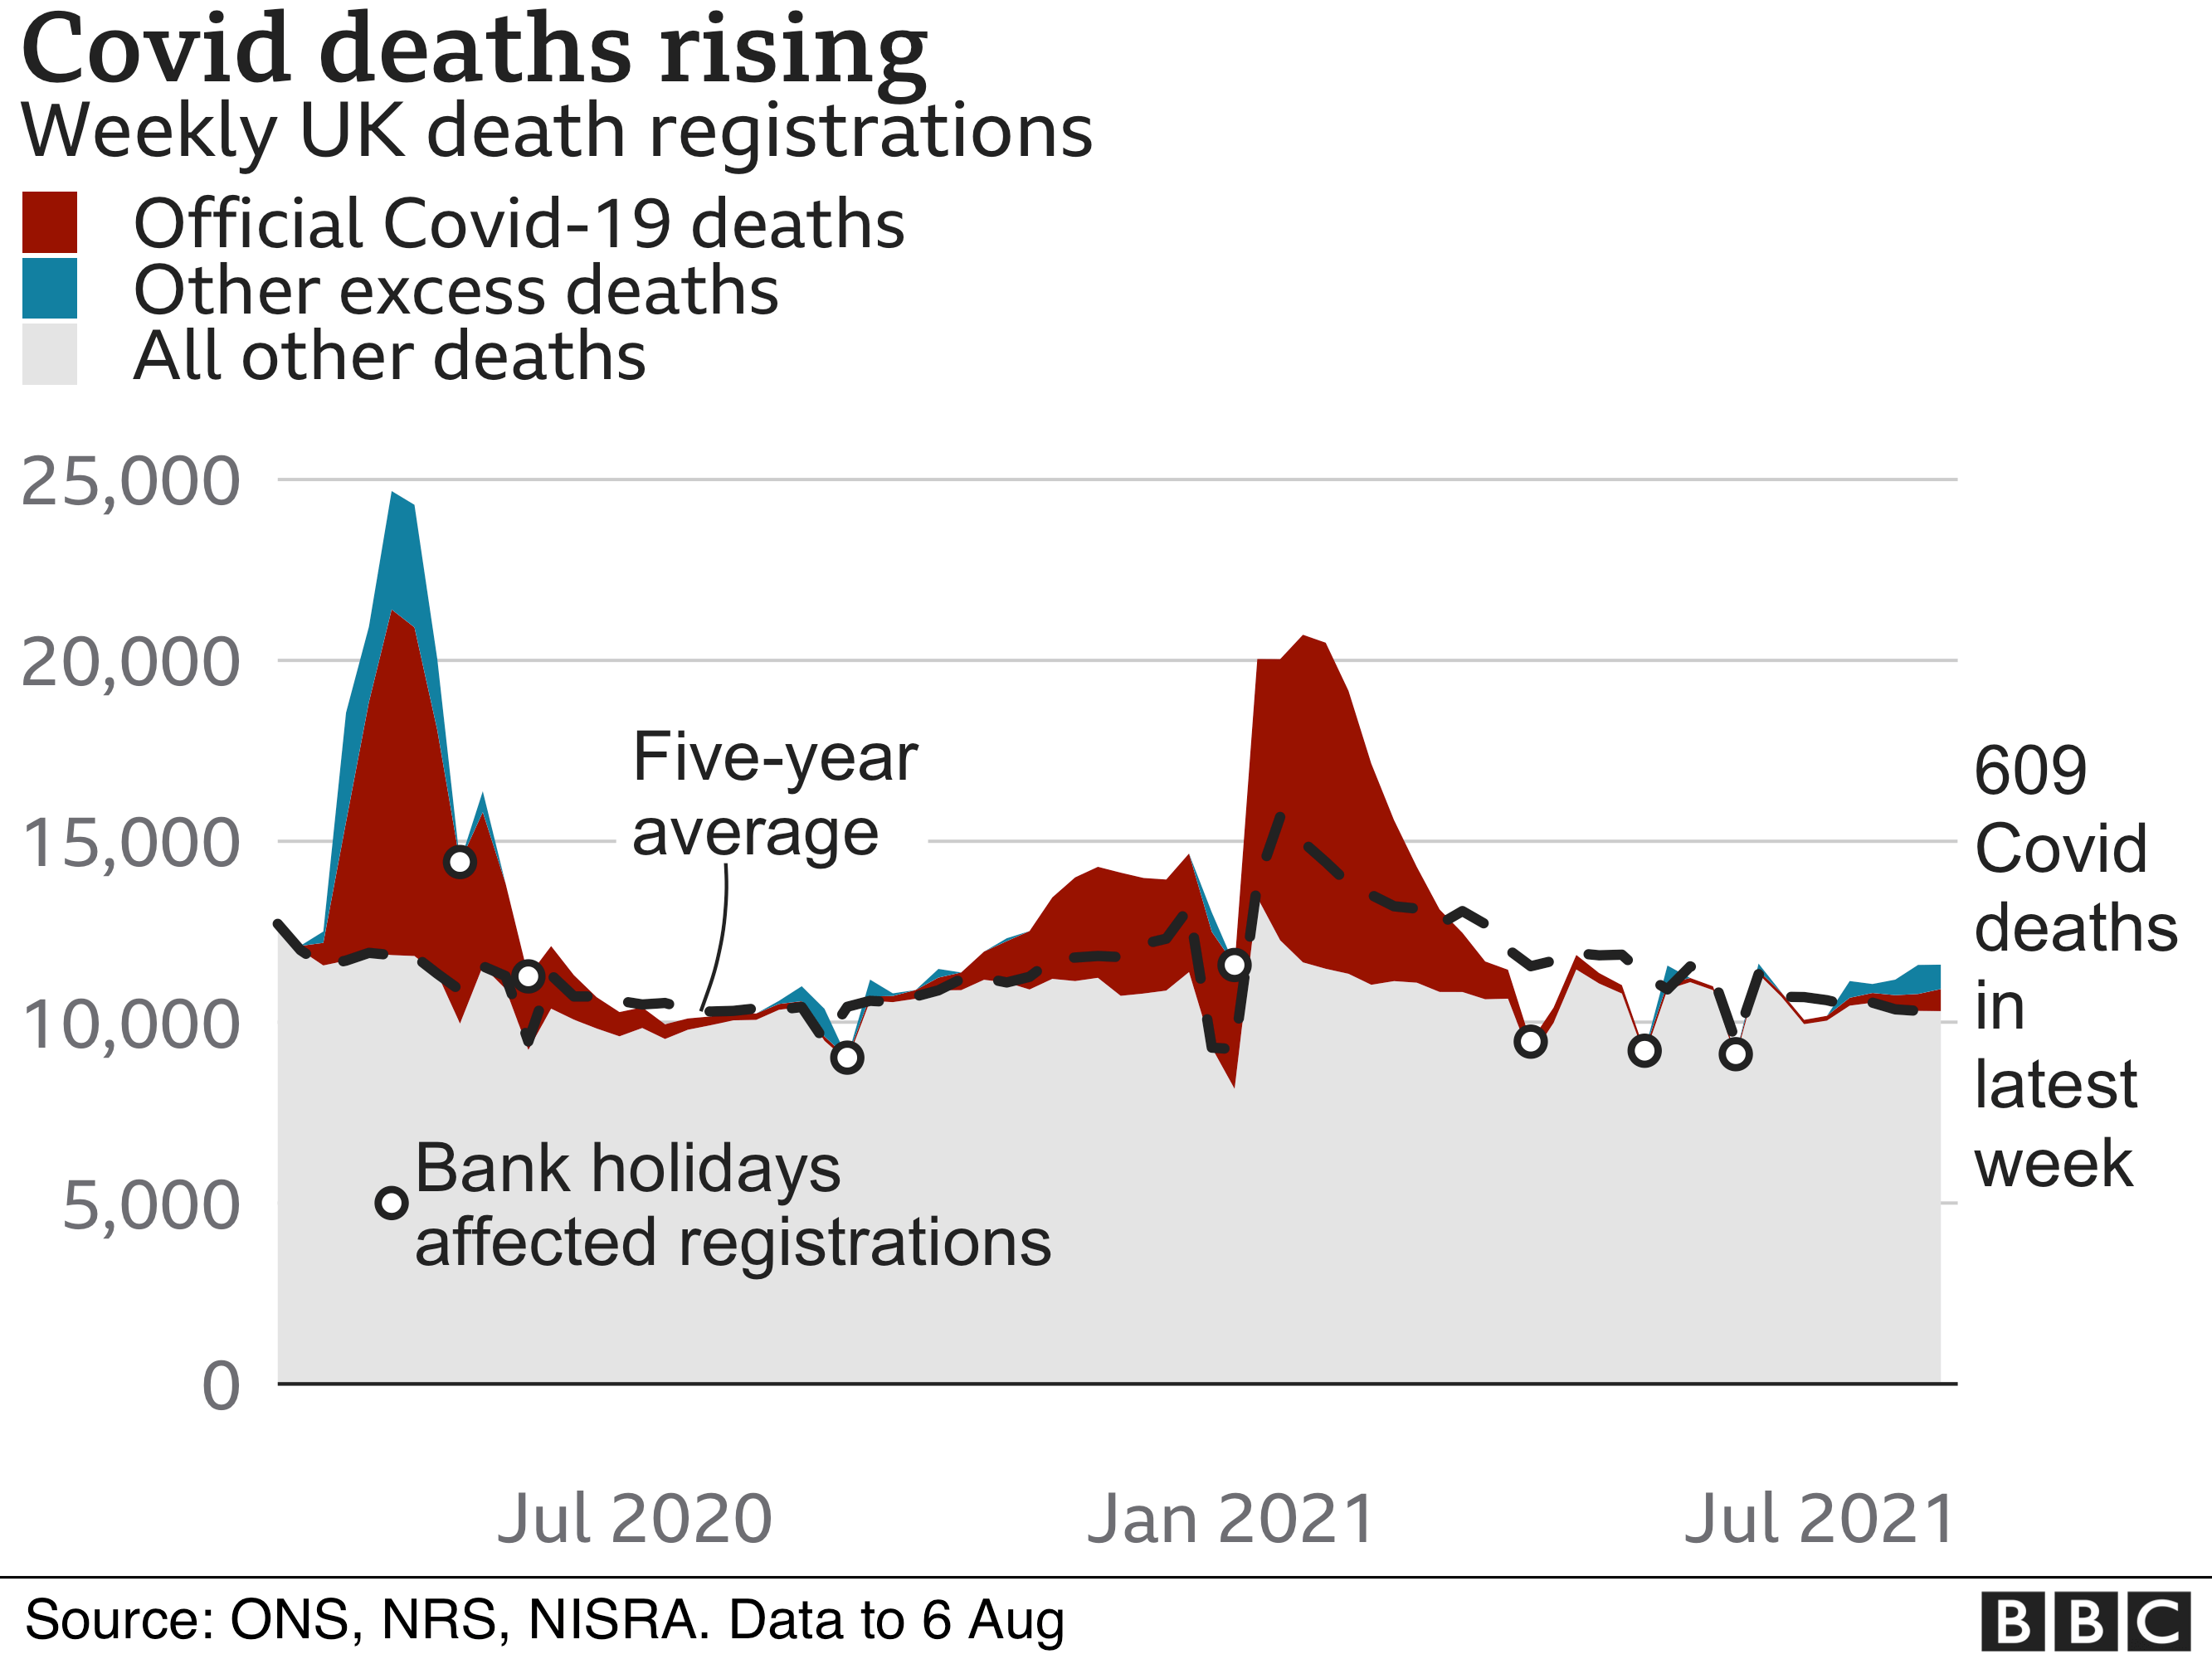 Chart showing deaths in the UK compared with the average between 2015 and 2019